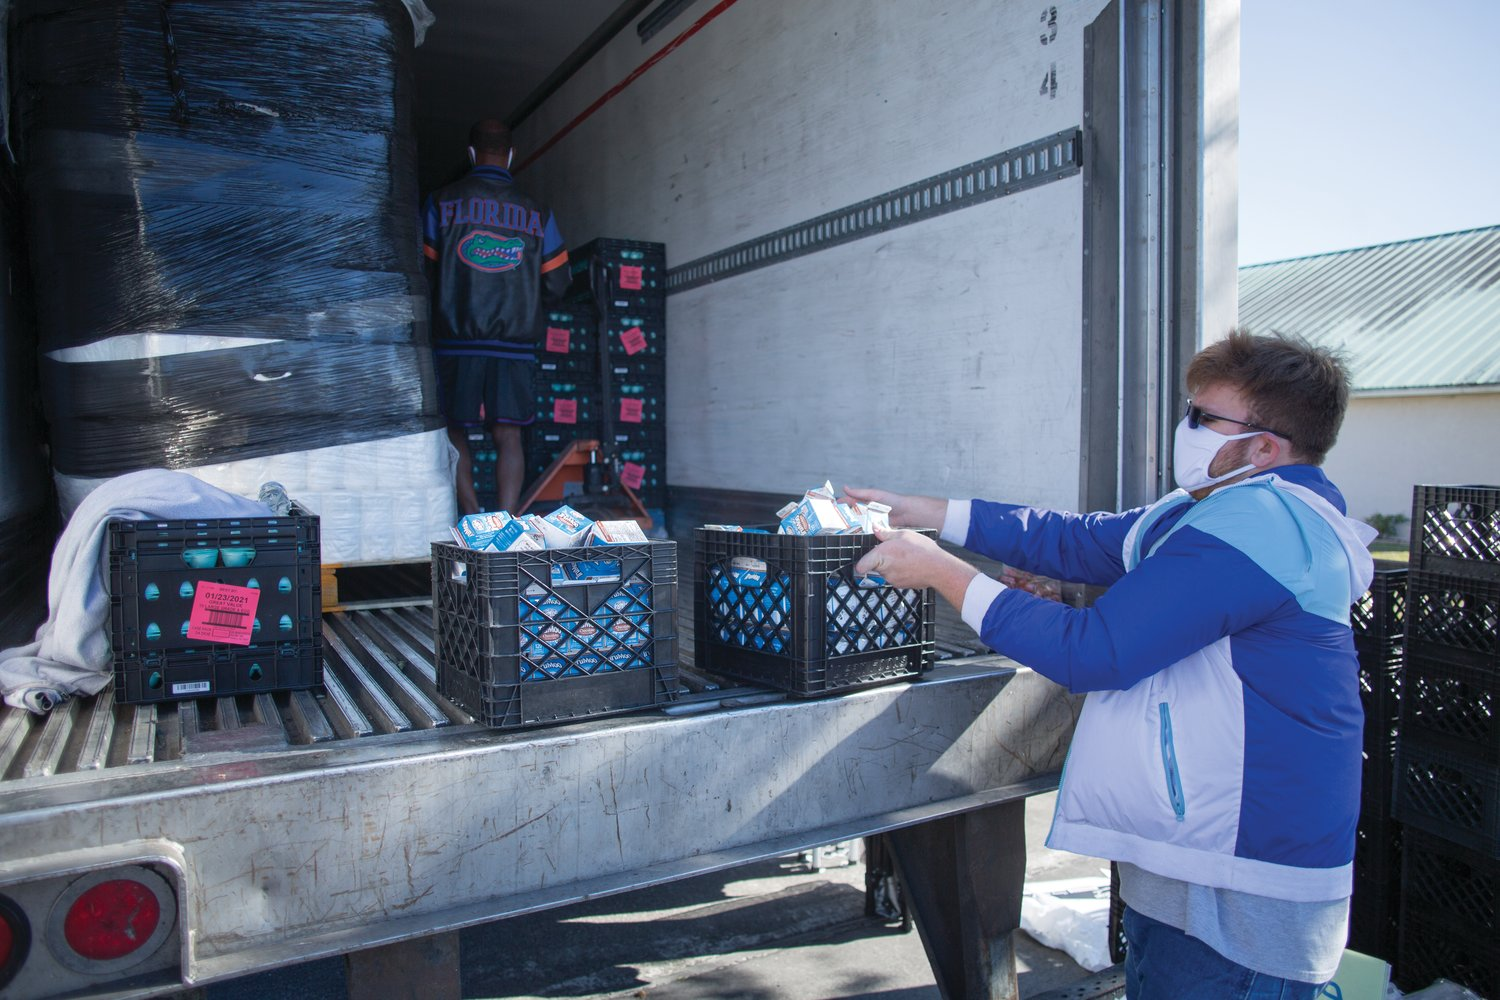 Volunteers help unload the tractor trailer full of food for needy families on Jan. 4.